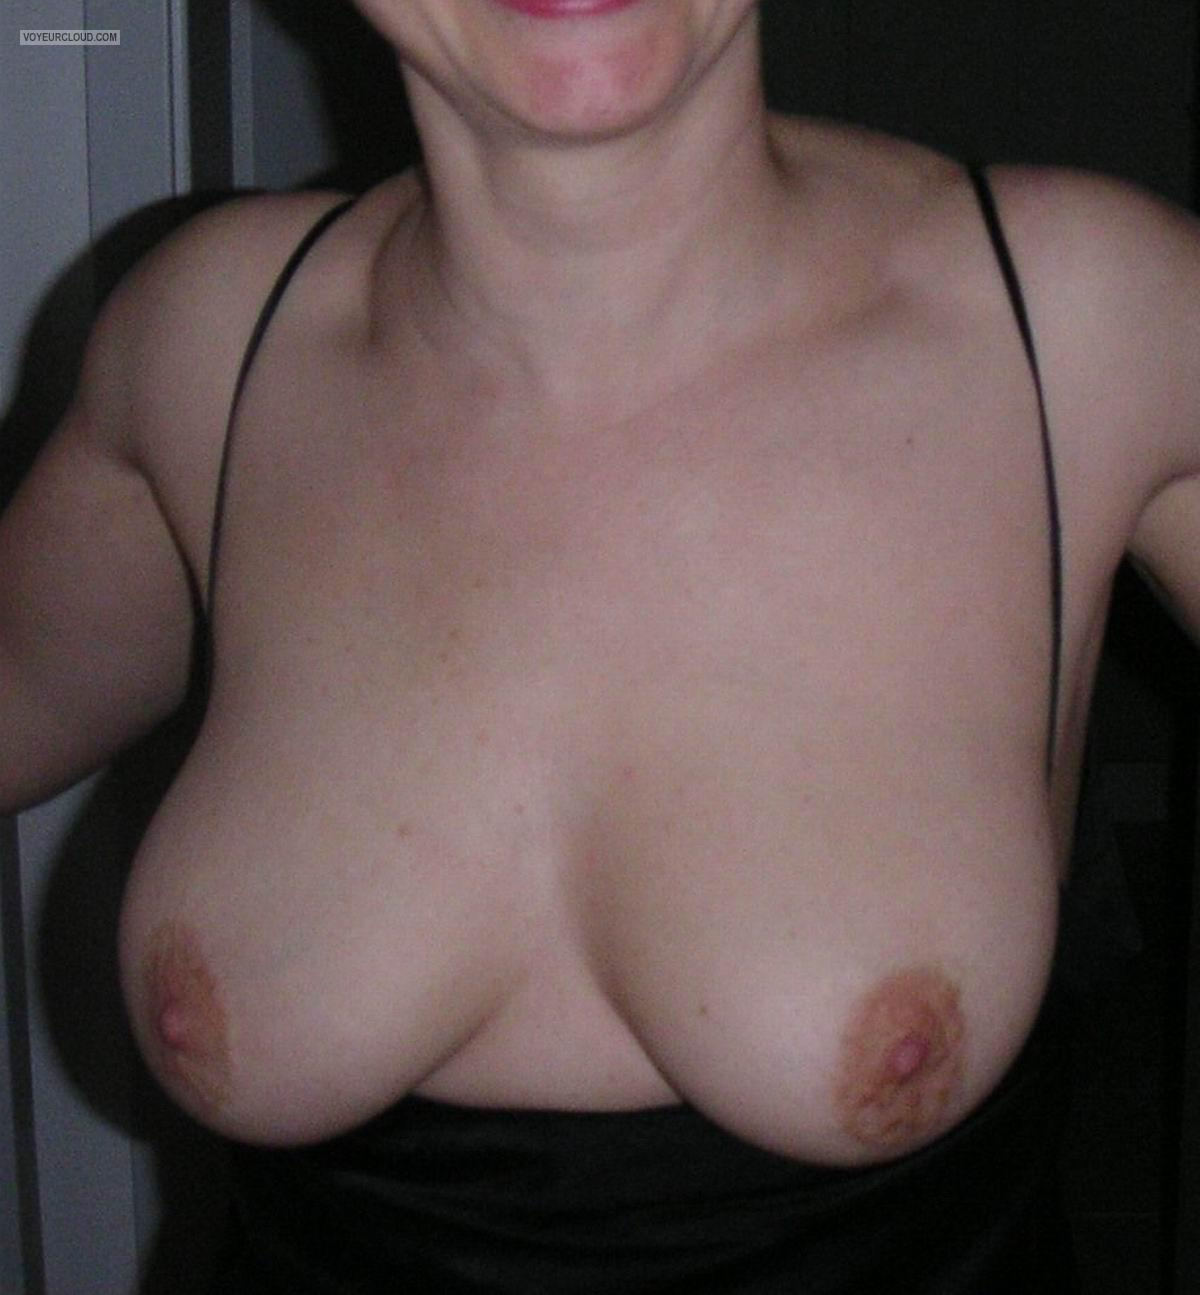 Tit Flash: My Medium Tits - Liz67 from United States